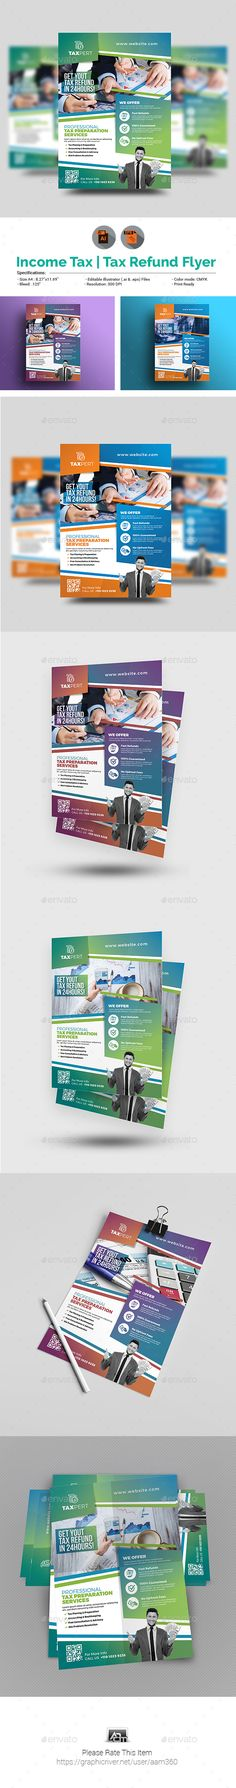 #Income Tax Flyer Template - #Corporate #Flyers